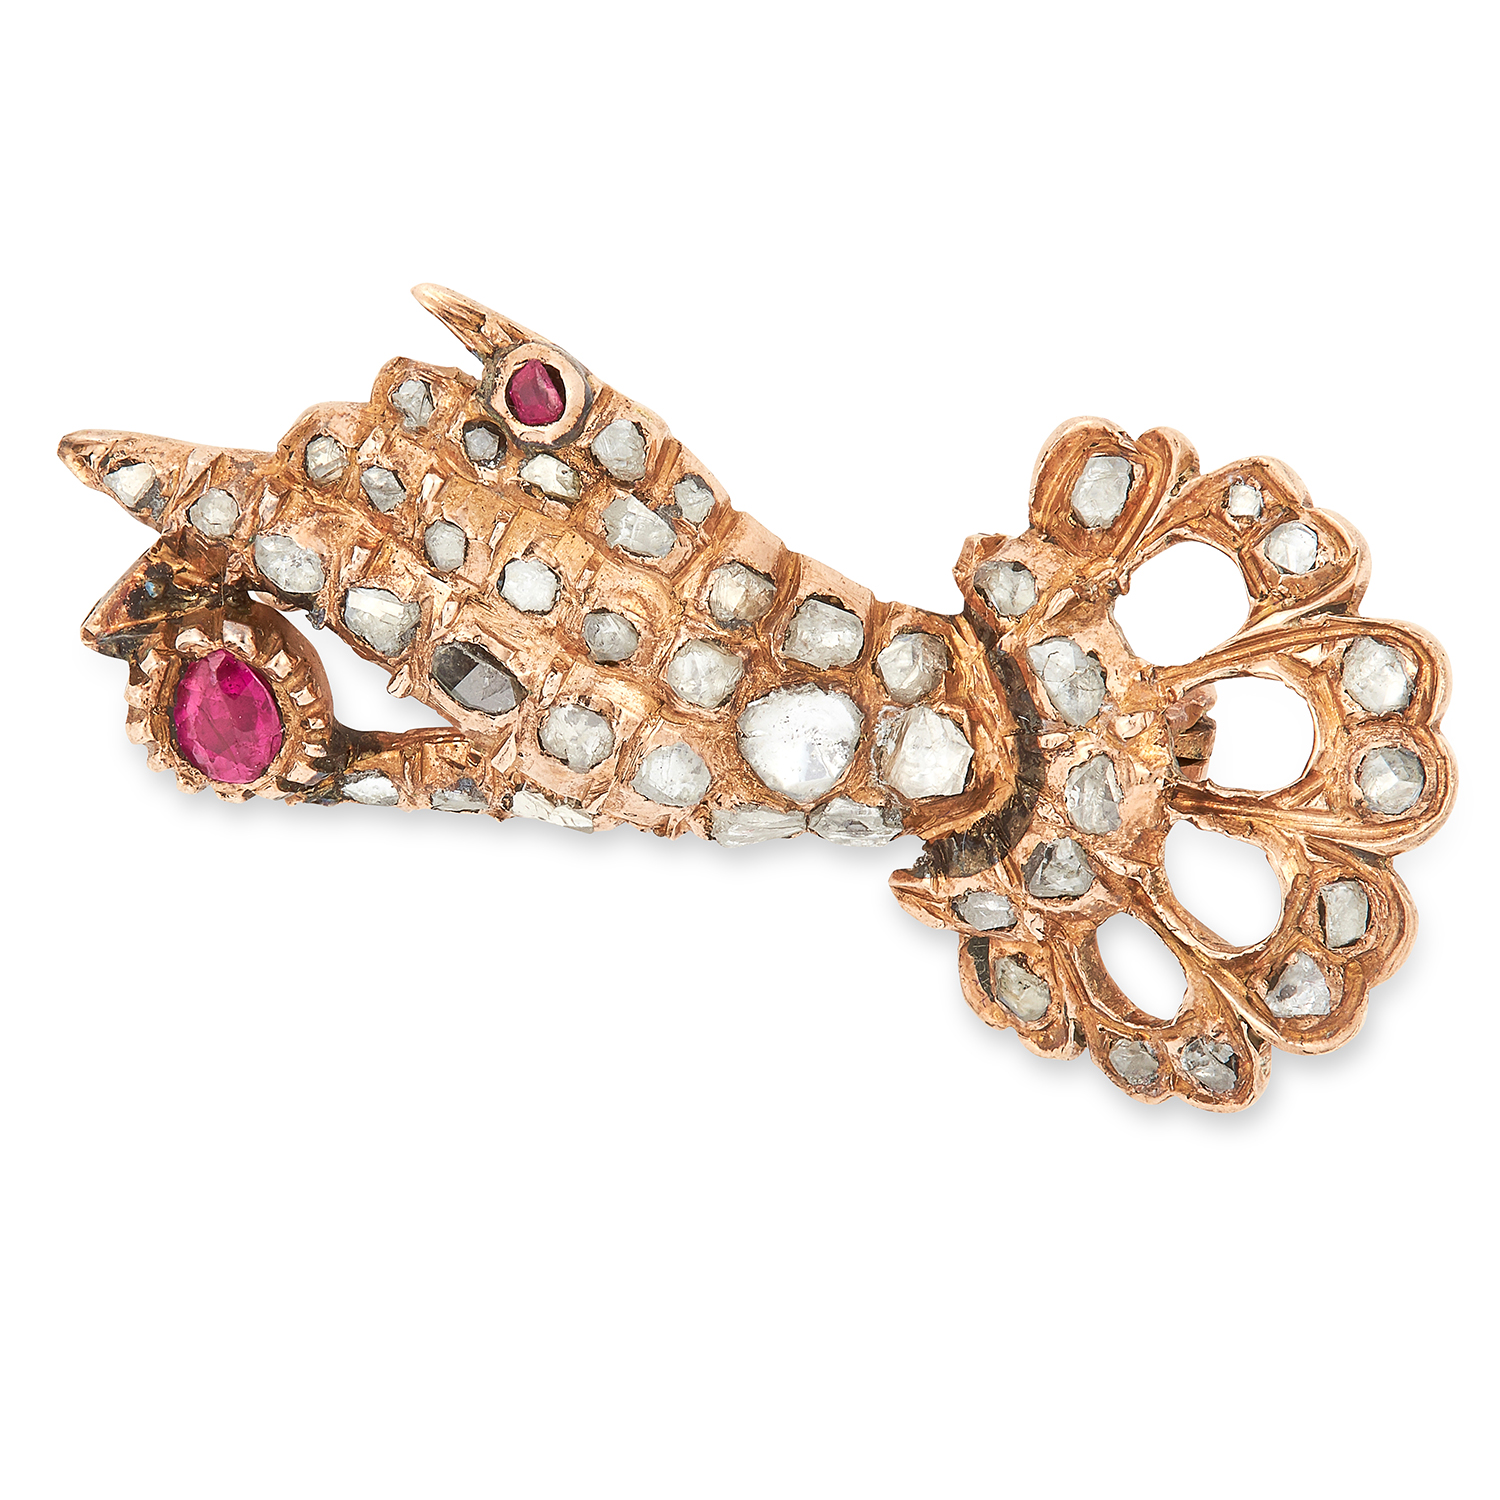 Los 40 - ANTIQUE RUBY AND DIAMOND HAND BROOCH set with cushion cut rubies and rose cut diamonds, 3.3cm, 4.